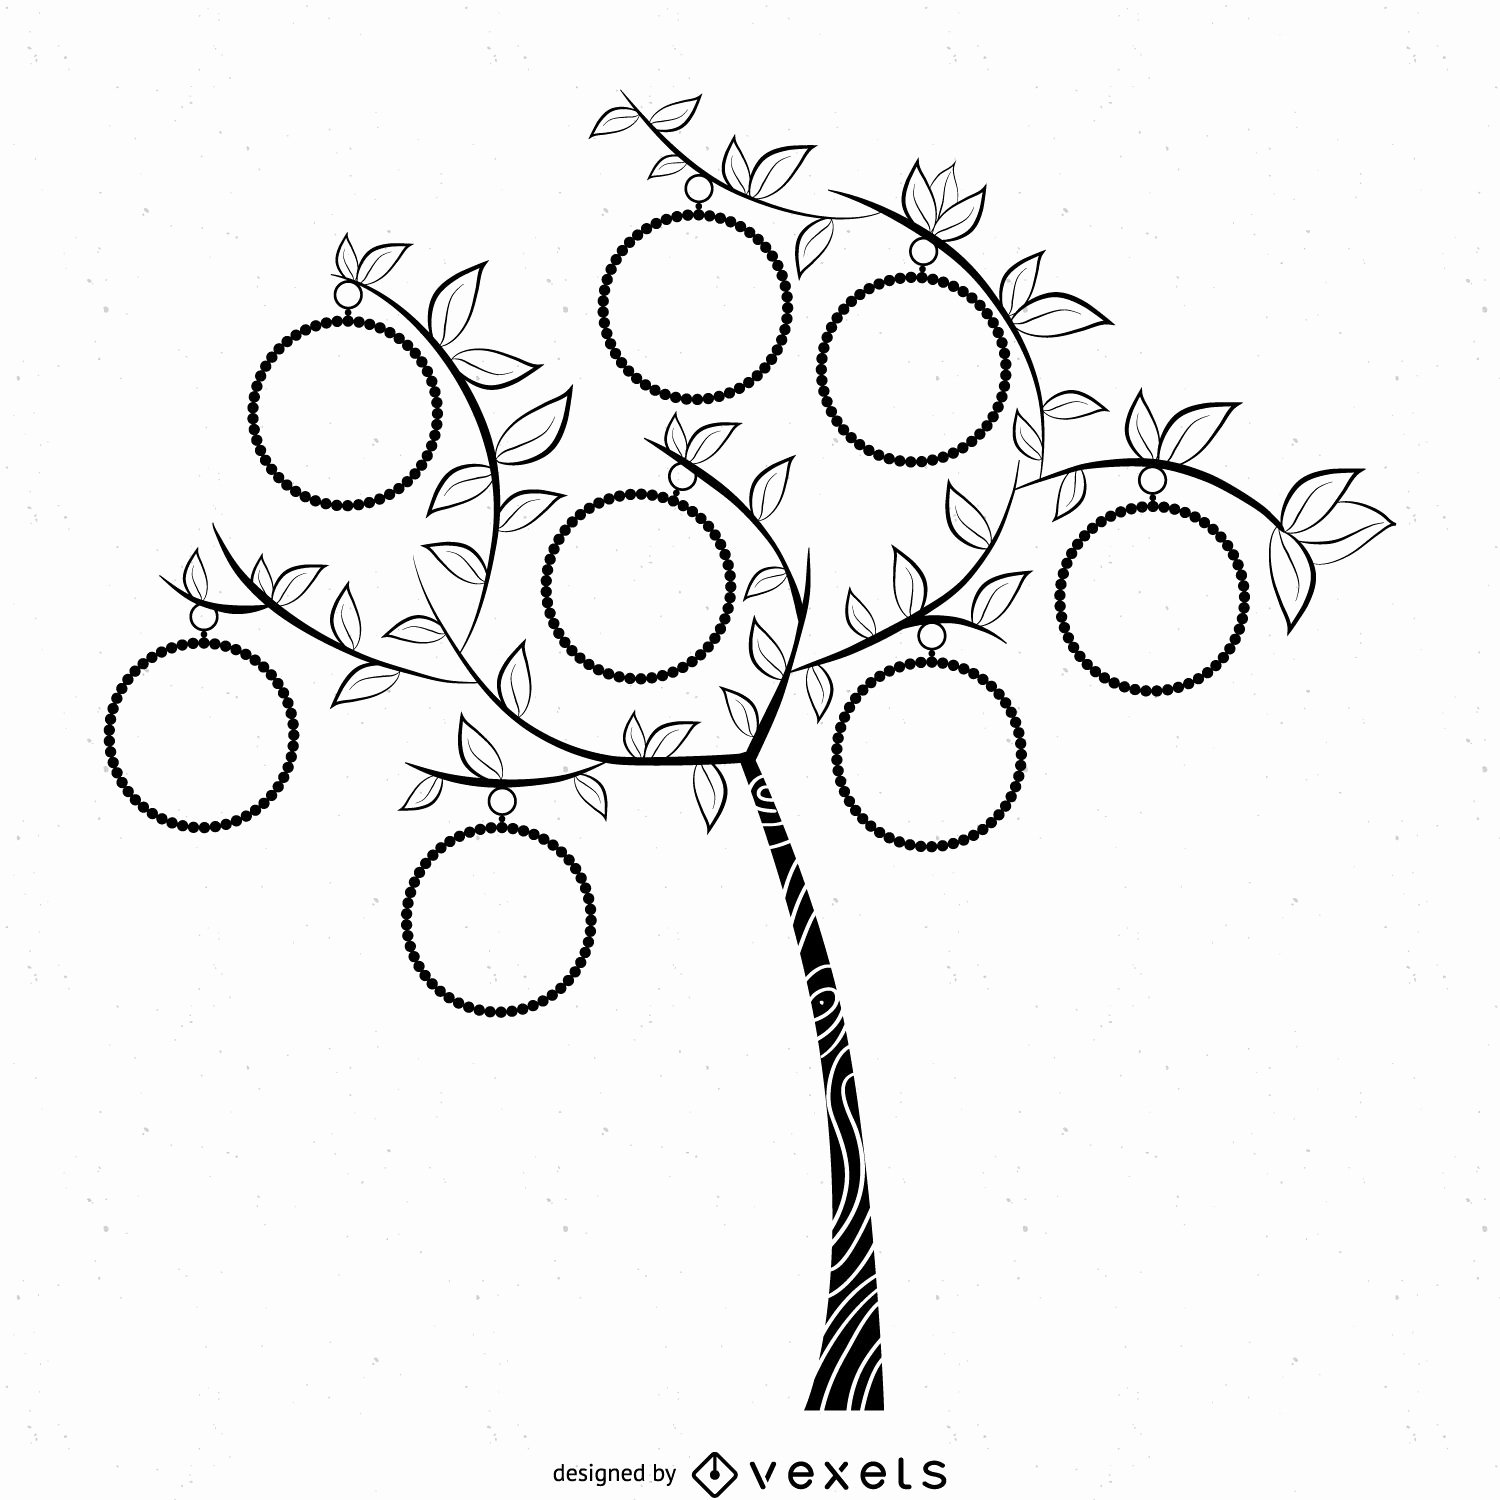 Simple Family Tree Template Inspirational Simple B&w Family Tree Template Vector